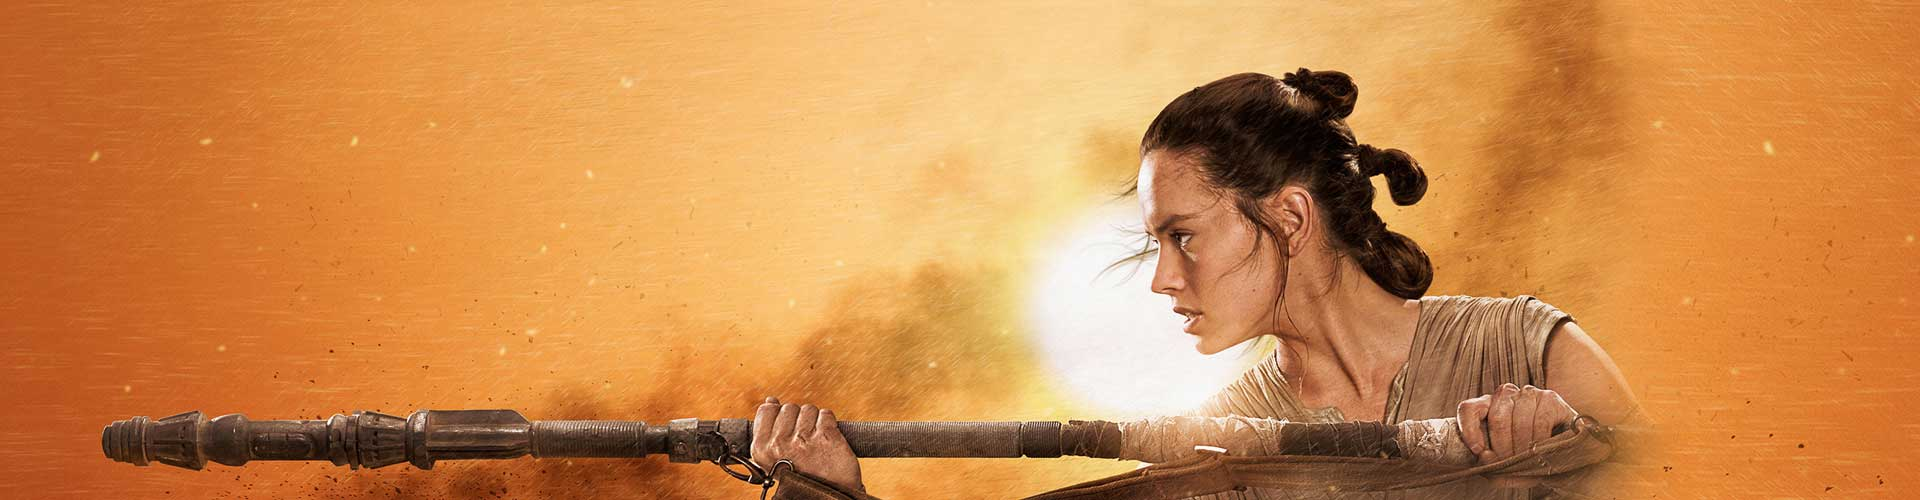 Rey of Light: Why the new heroine of Star Wars is a 21st century icon